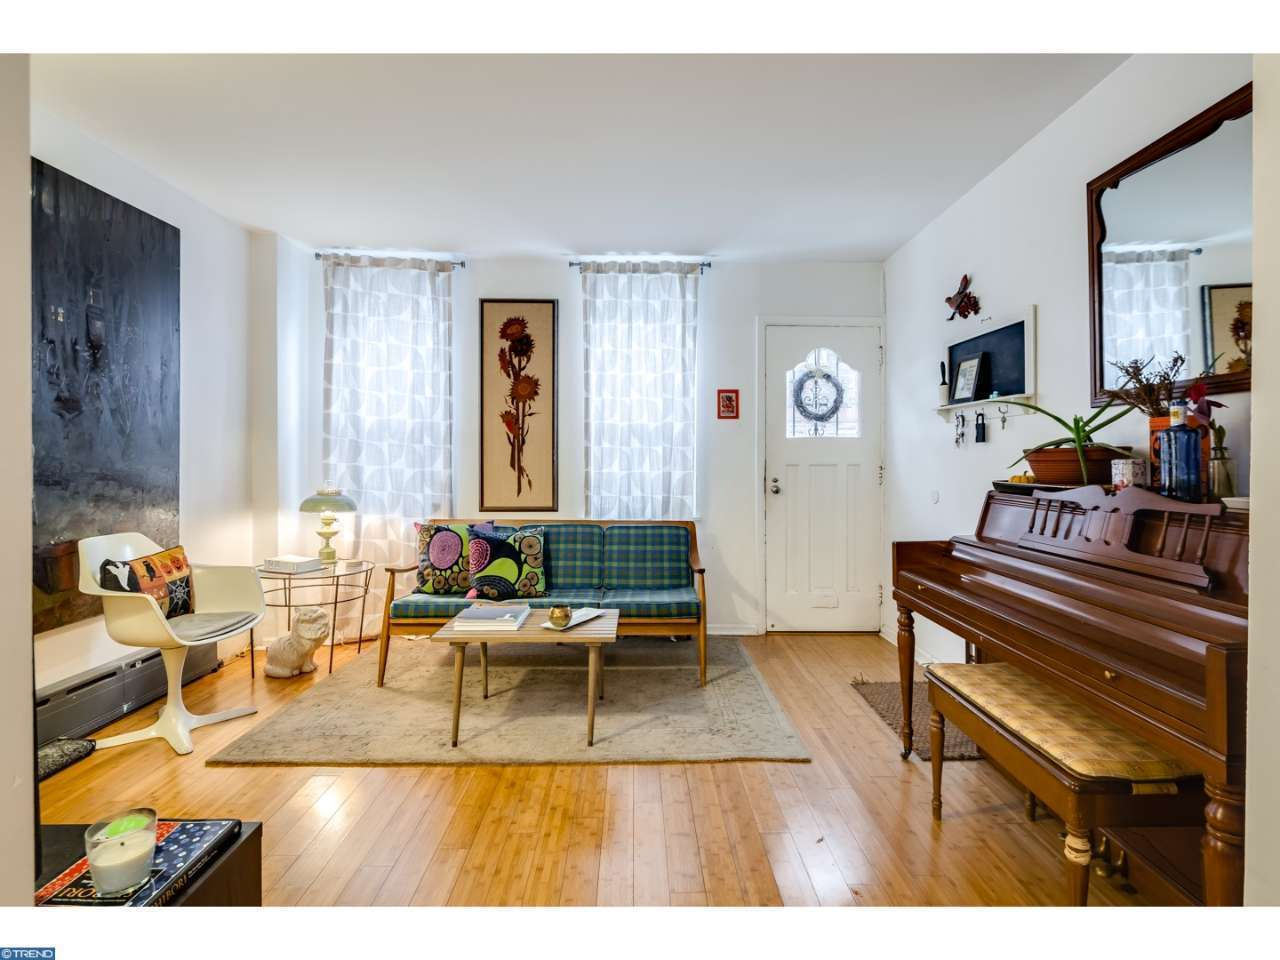 1313 S WARNOCK St, PHILADELPHIA, PA 19147 | MLS# 6903458 | Redfin